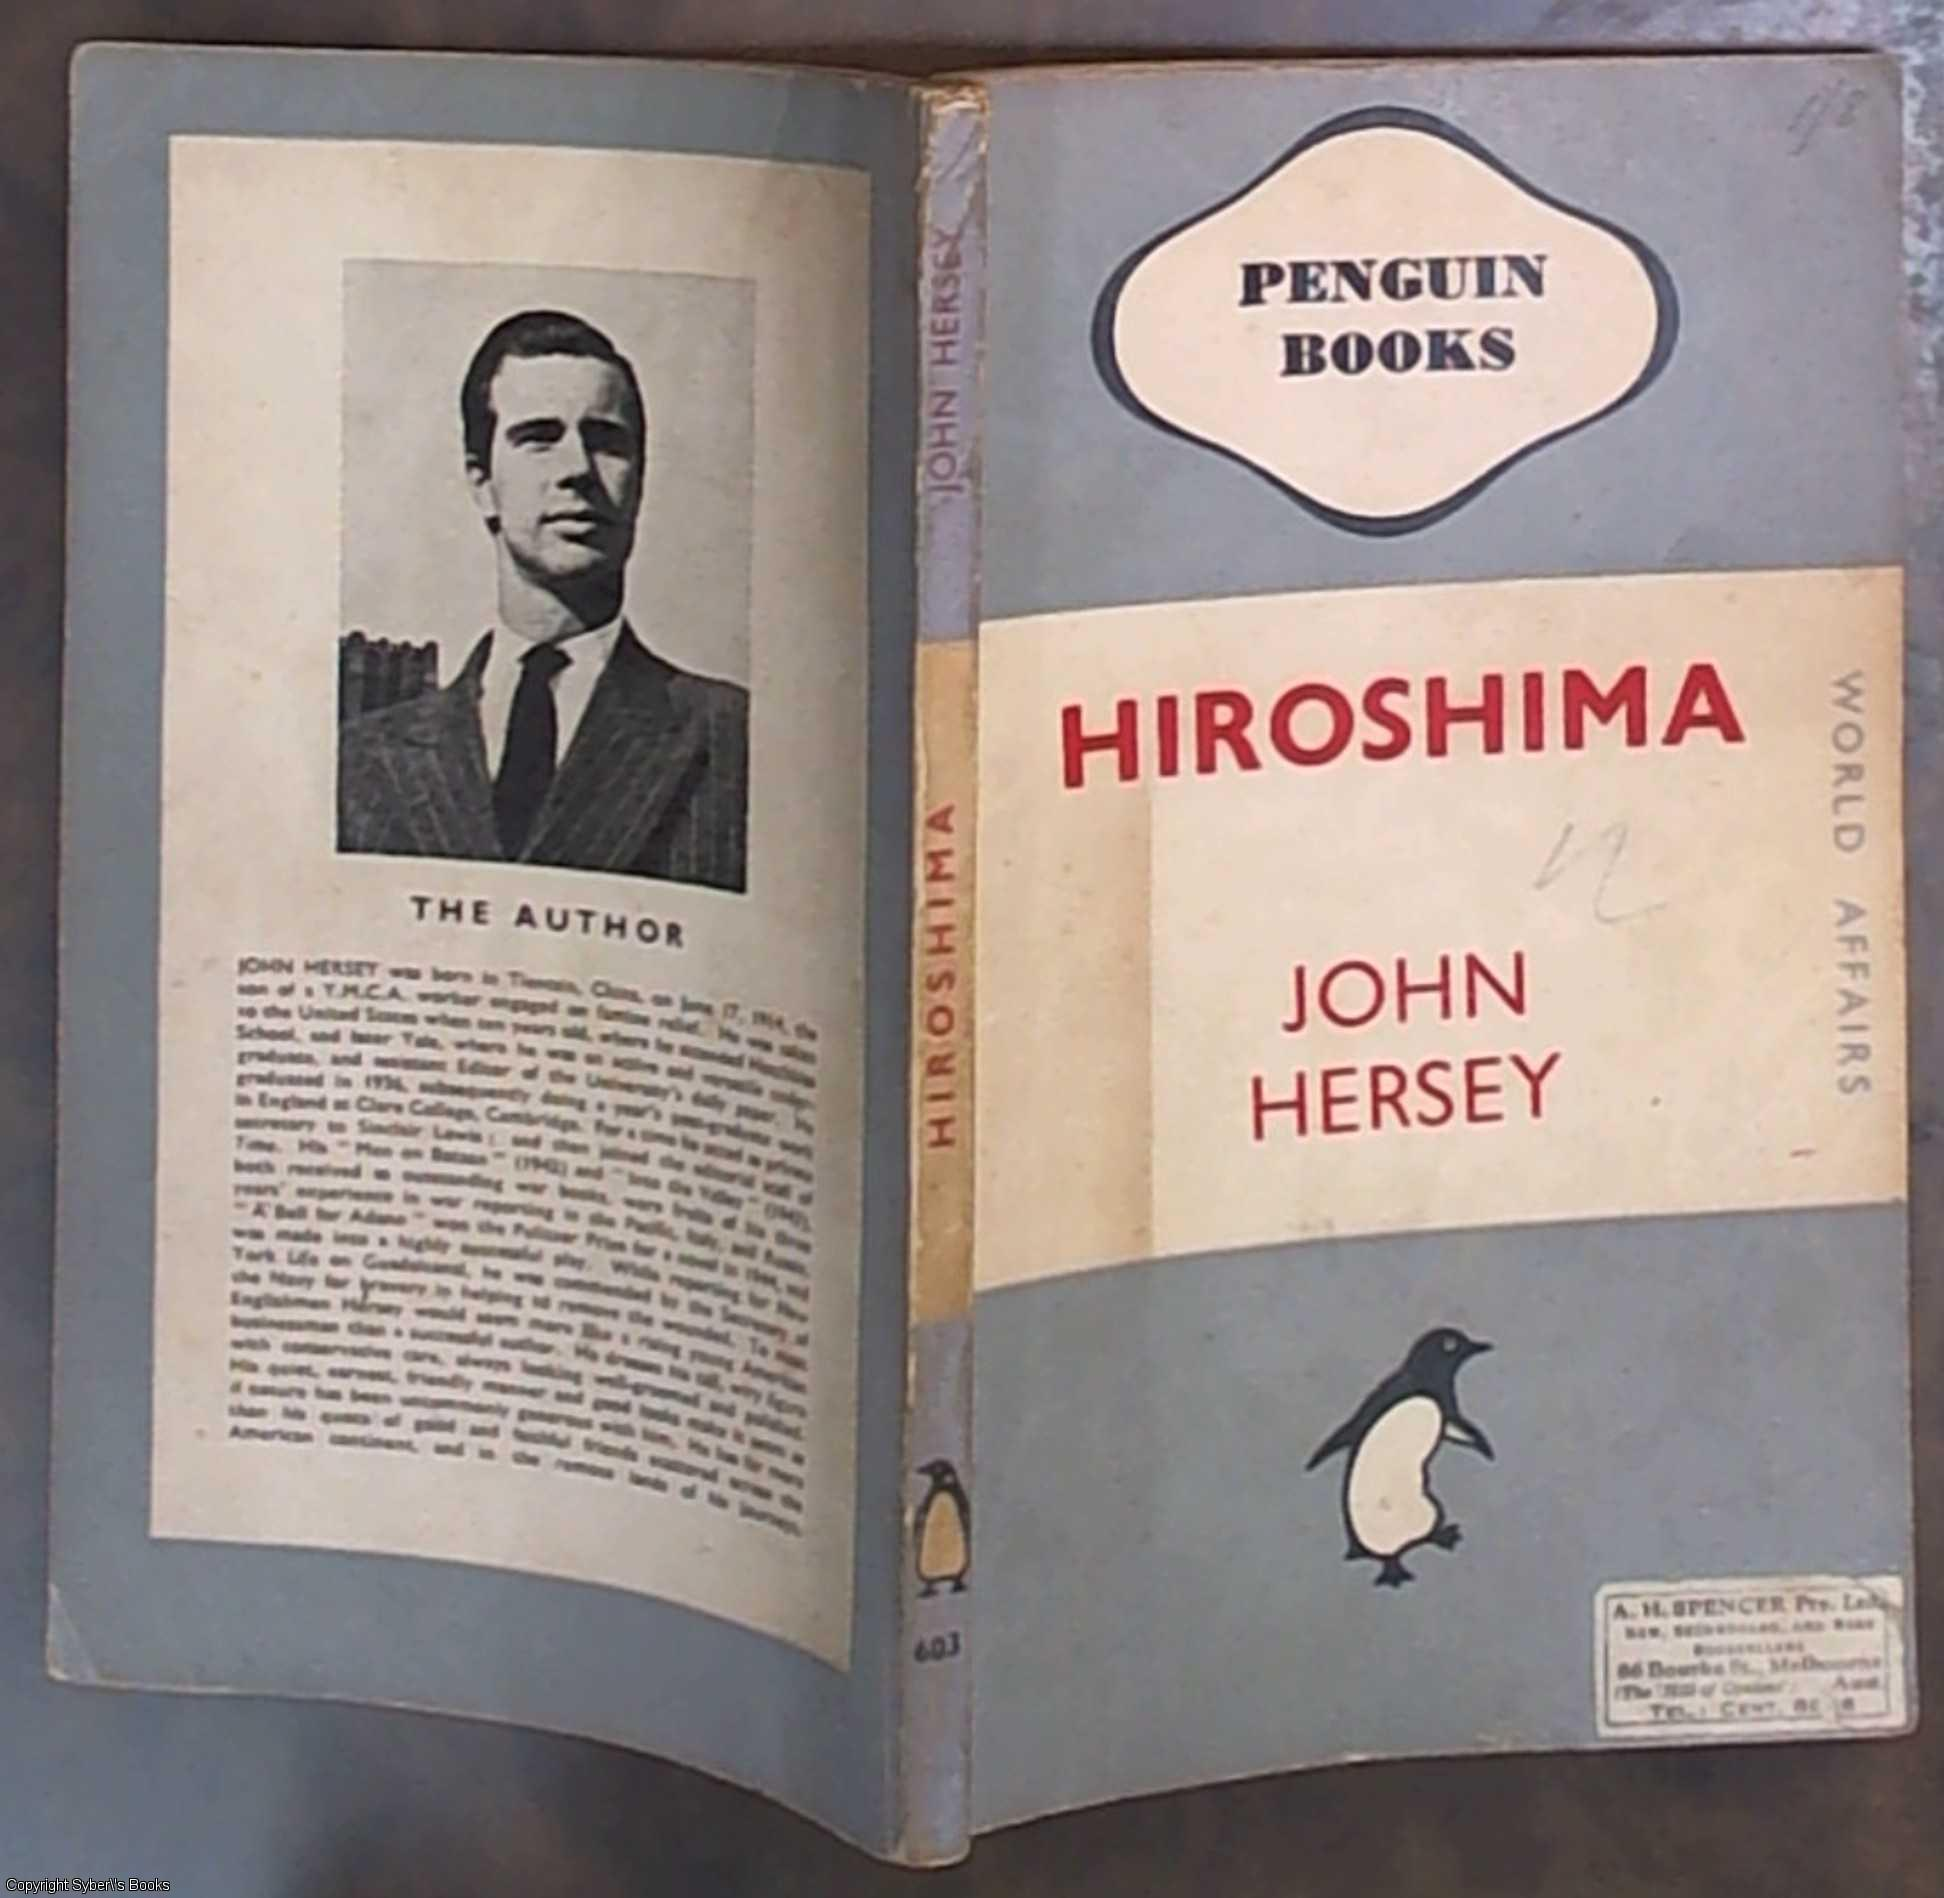 a review of the book hiroshima by john hersey Almost four decades after the original publication of this celebrated book, john hersey went back to hiroshima in search of the goodreads book reviews.